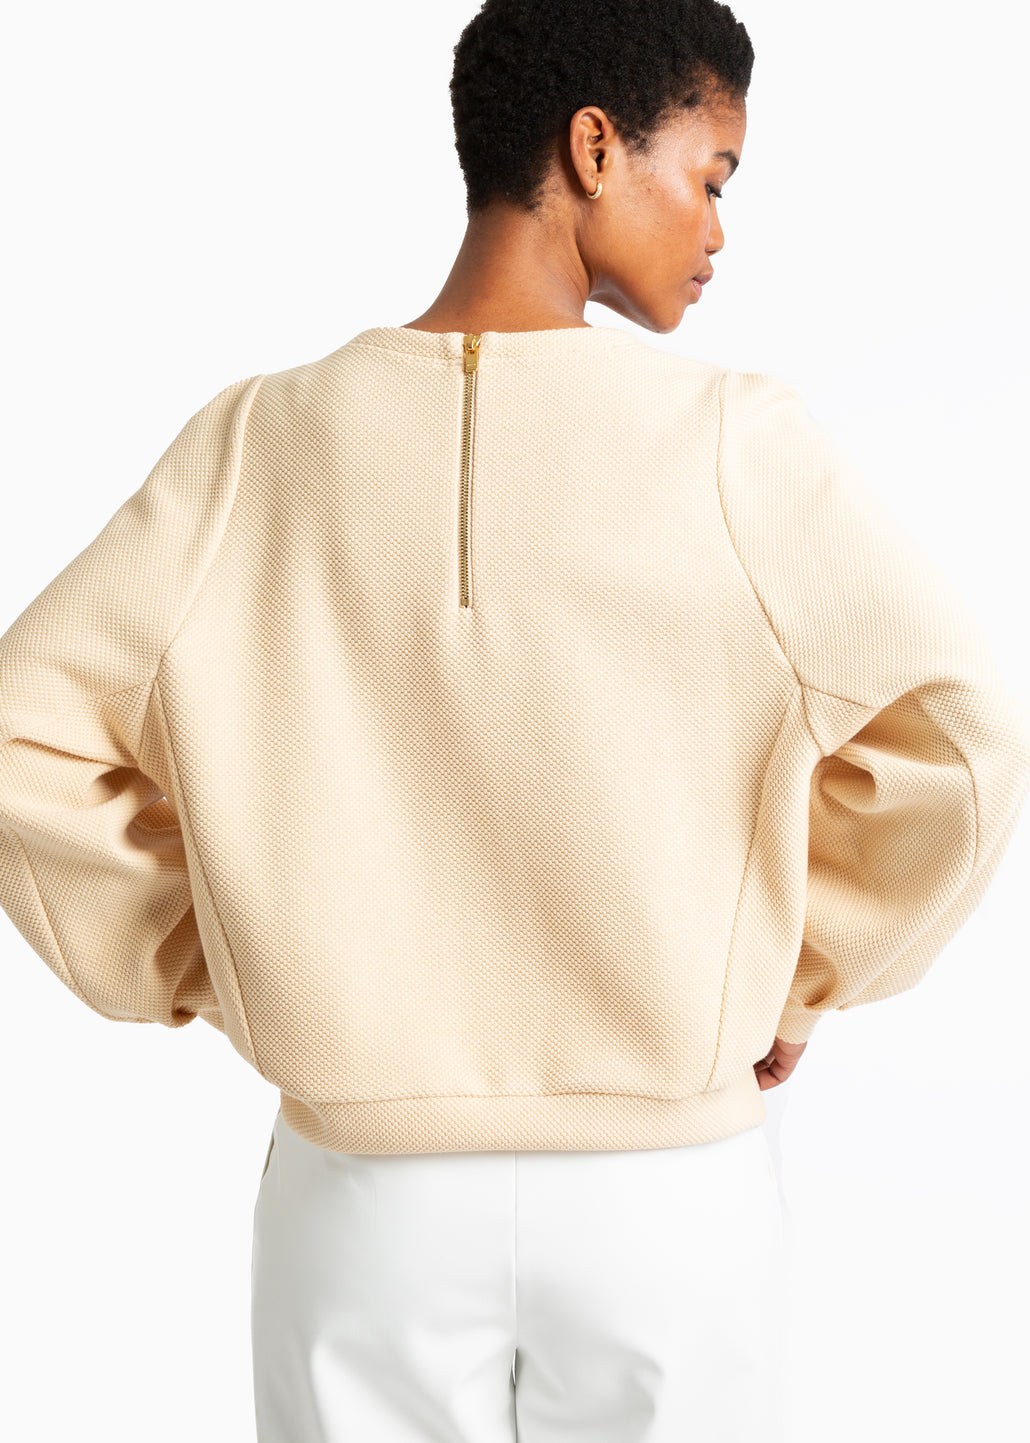 Relaxed struc sweater